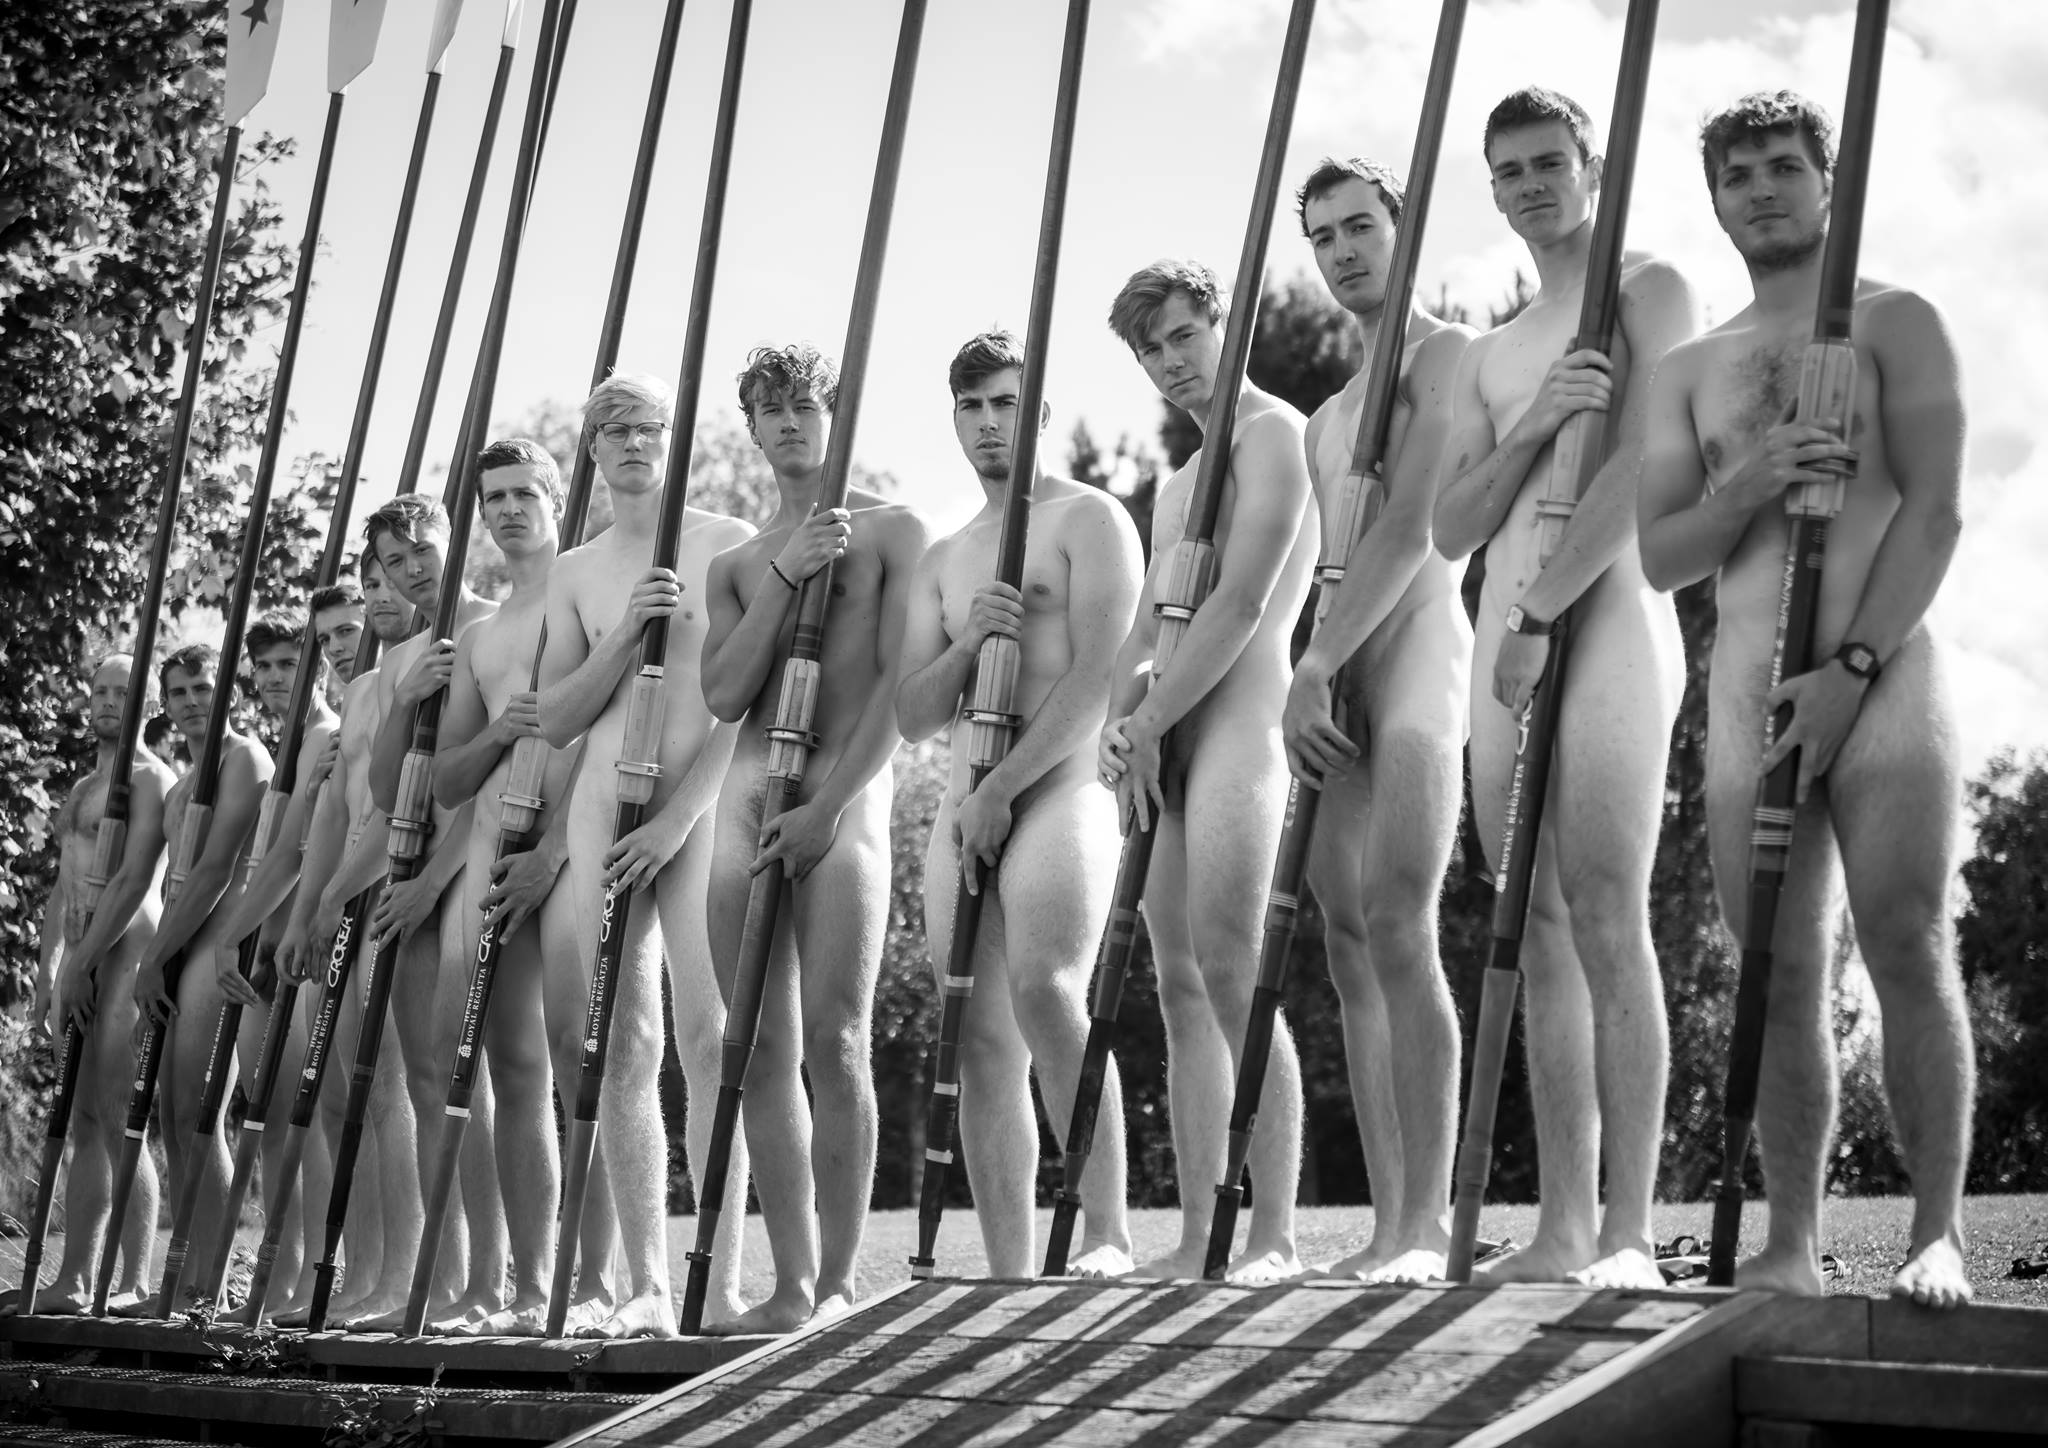 The Naked Rowers Full Frontal For Charity